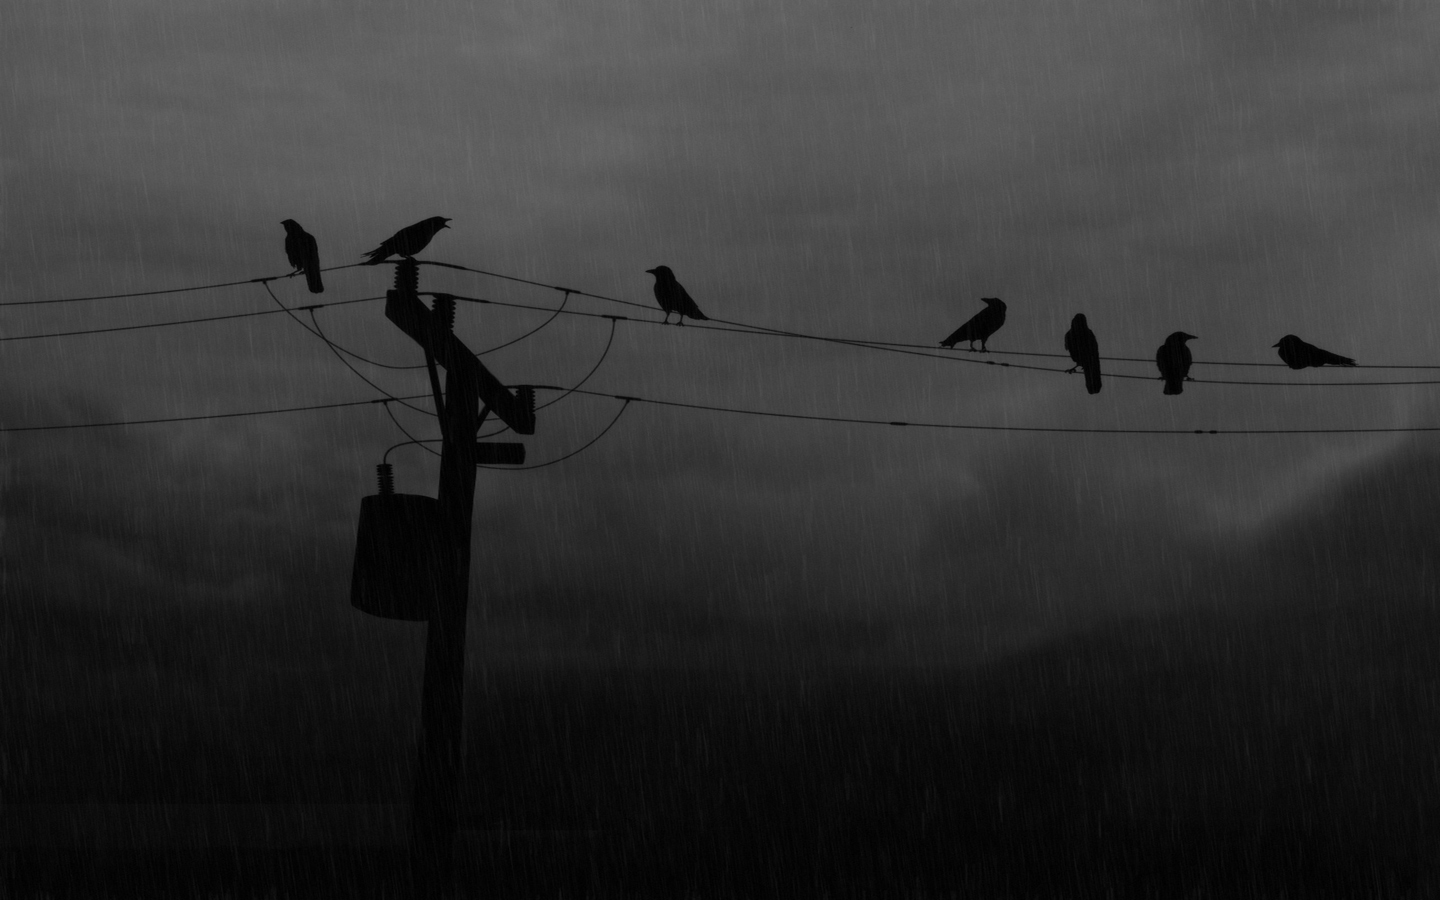 rain power lines crows